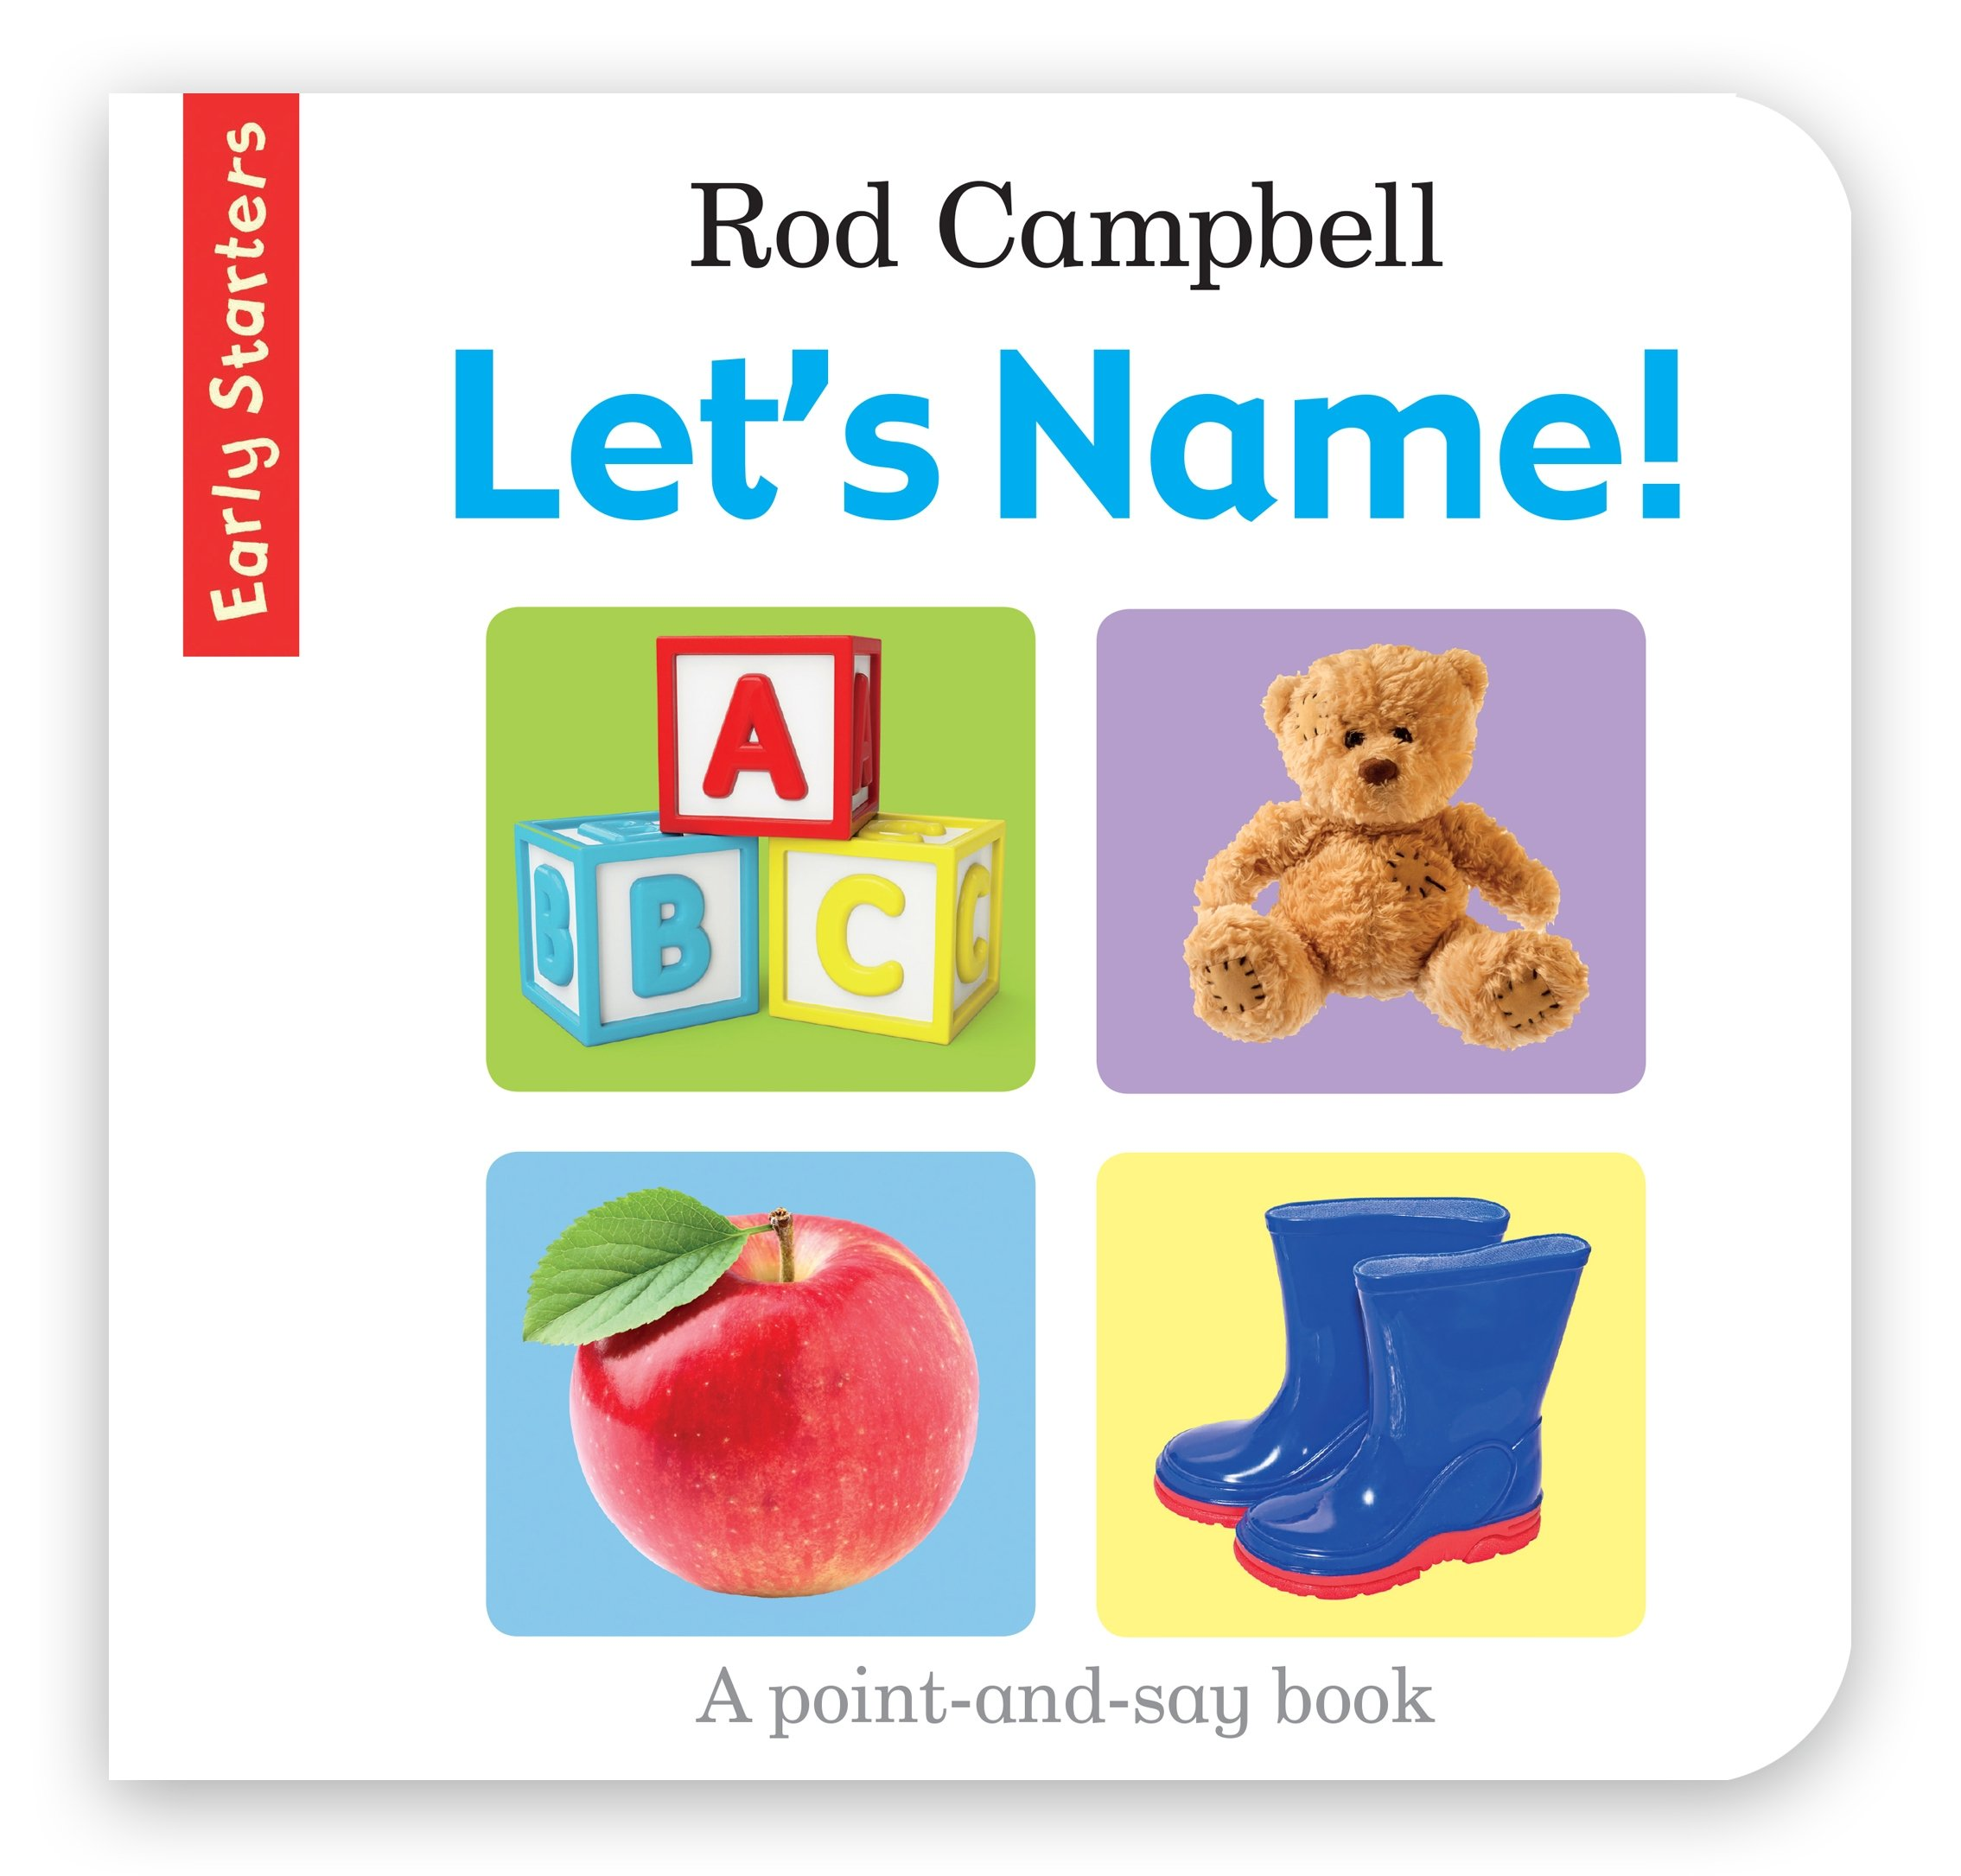 Let's Name! rod campbell early starters 123